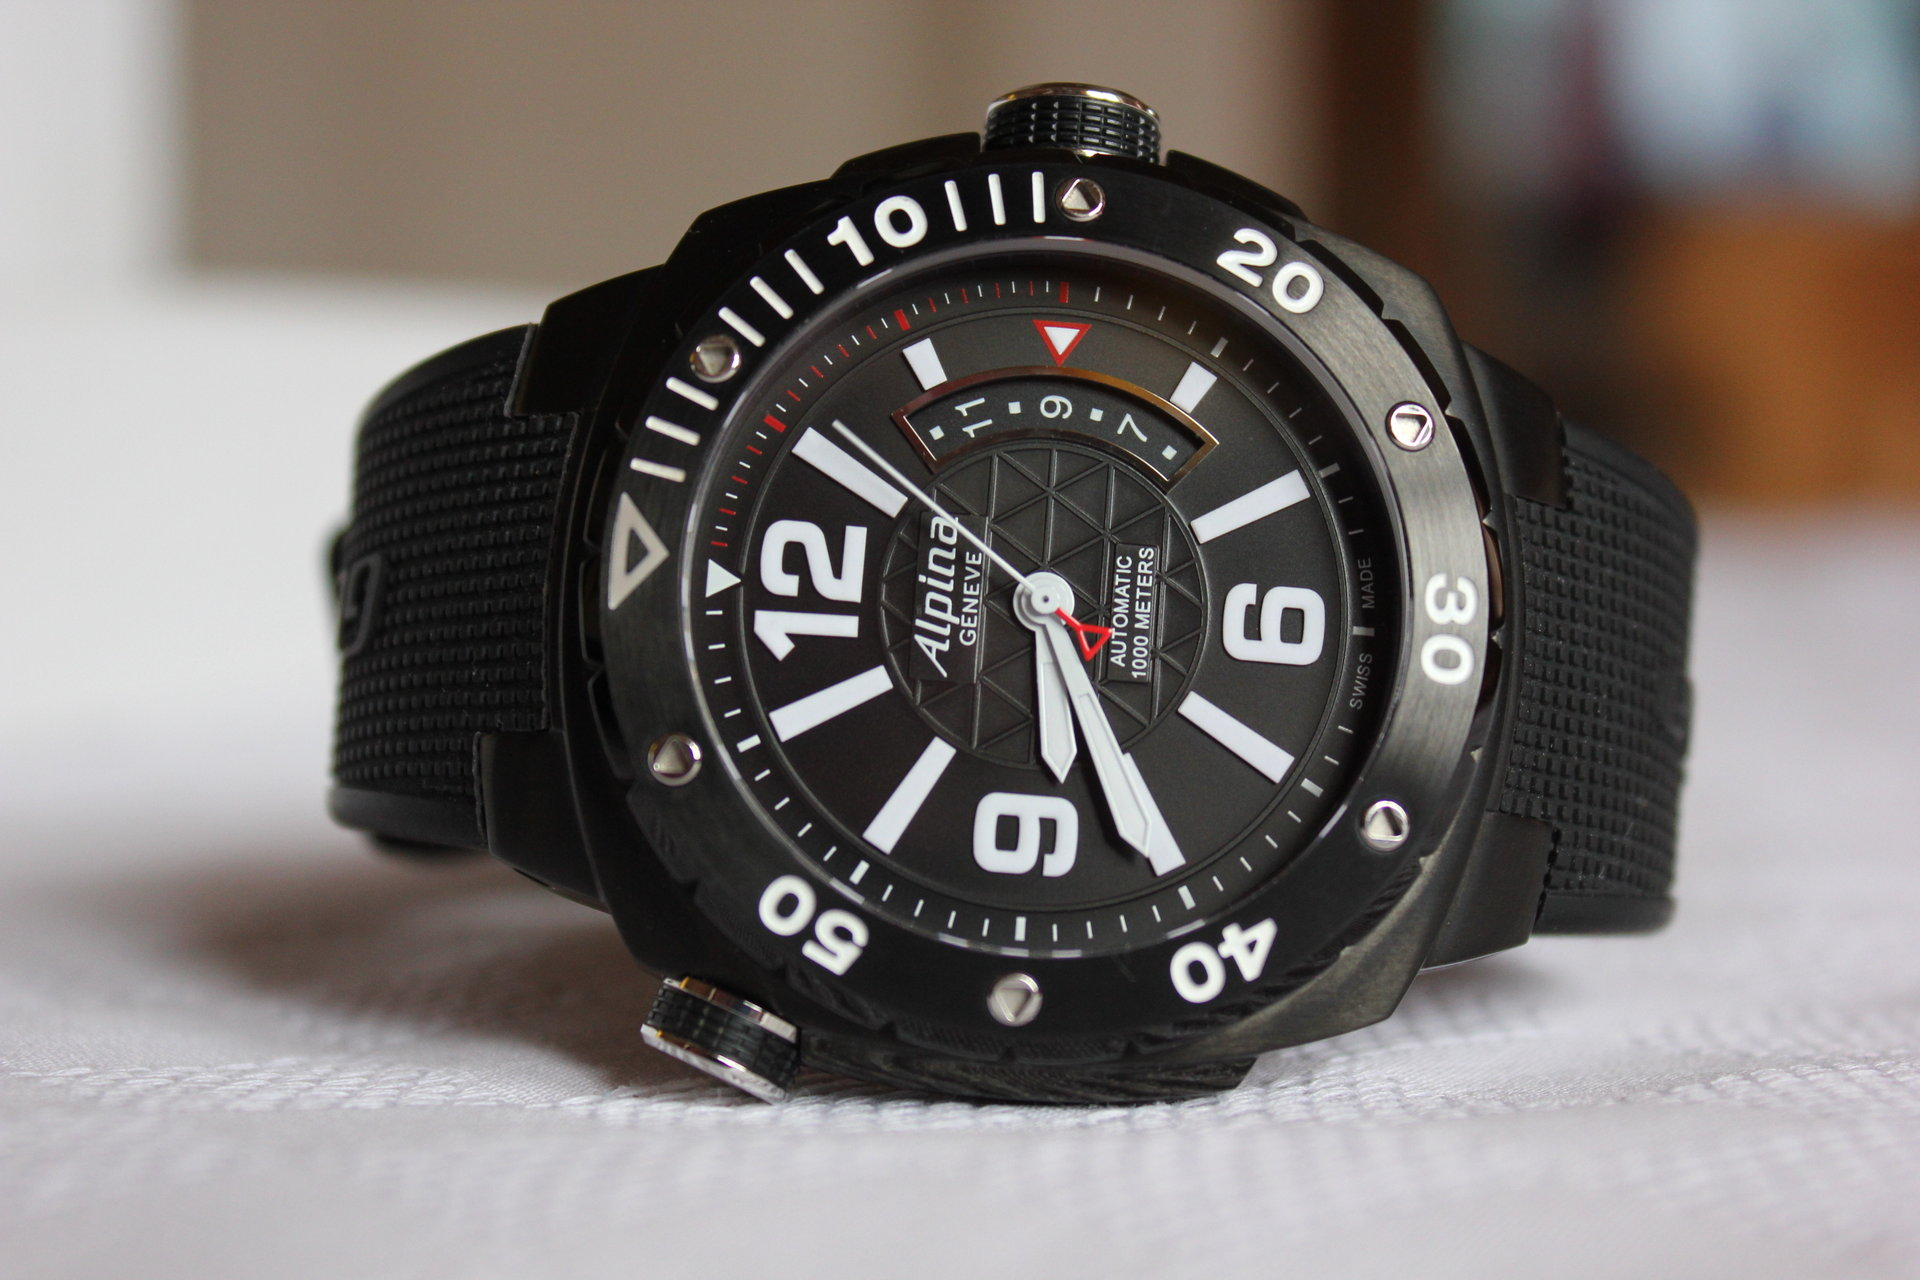 Alpina Extreme Diver 1000 Watch Review - WatchReviewBlog